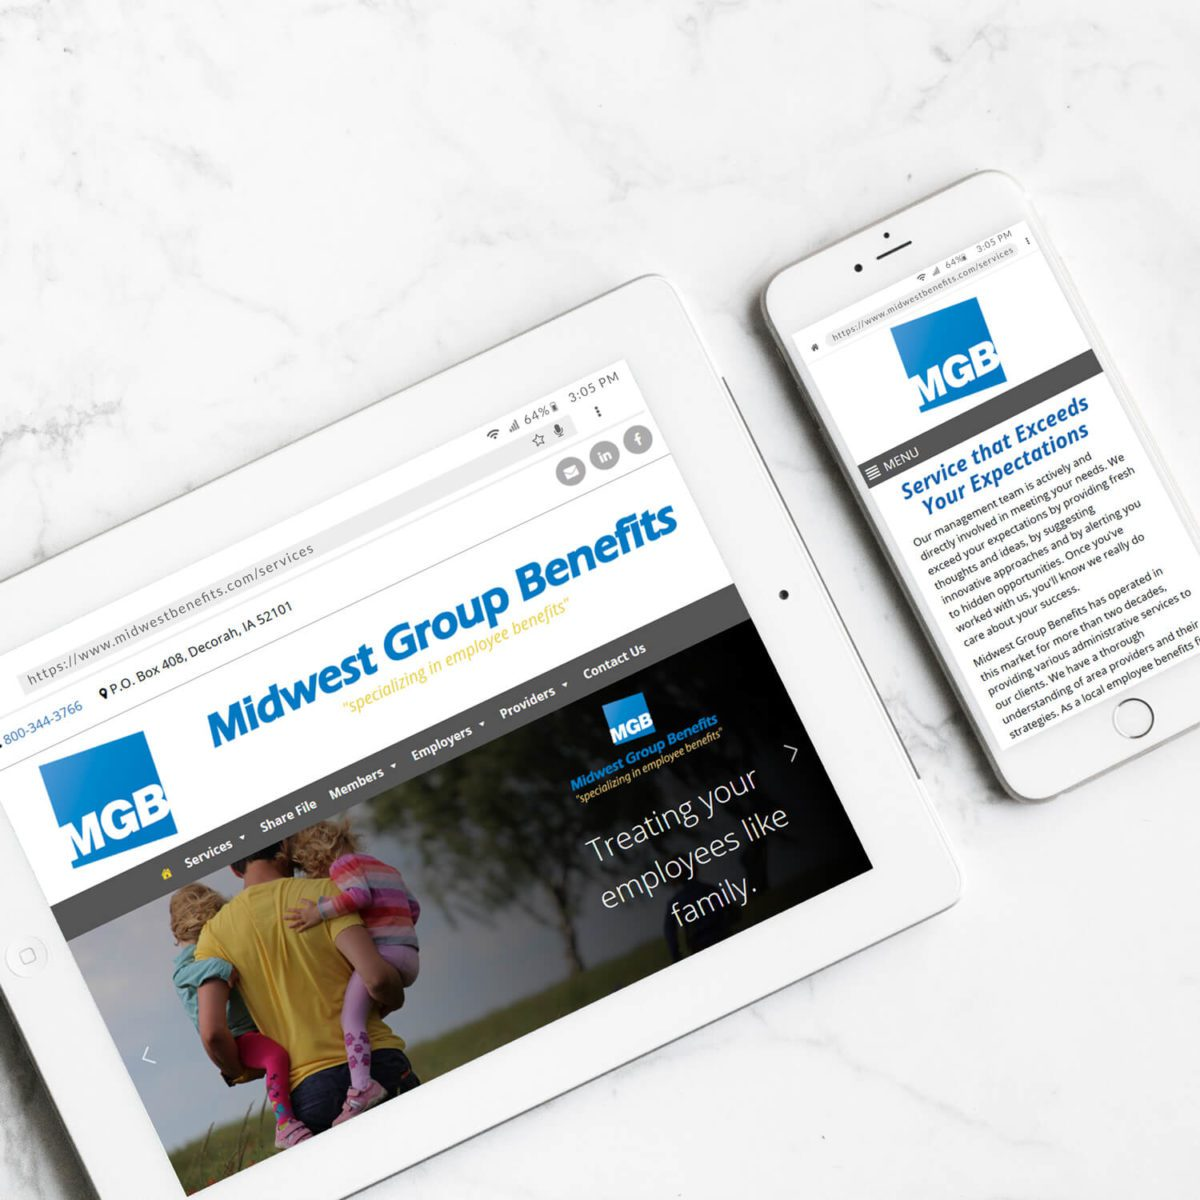 Midwest Group Benefits' website on mobile devices